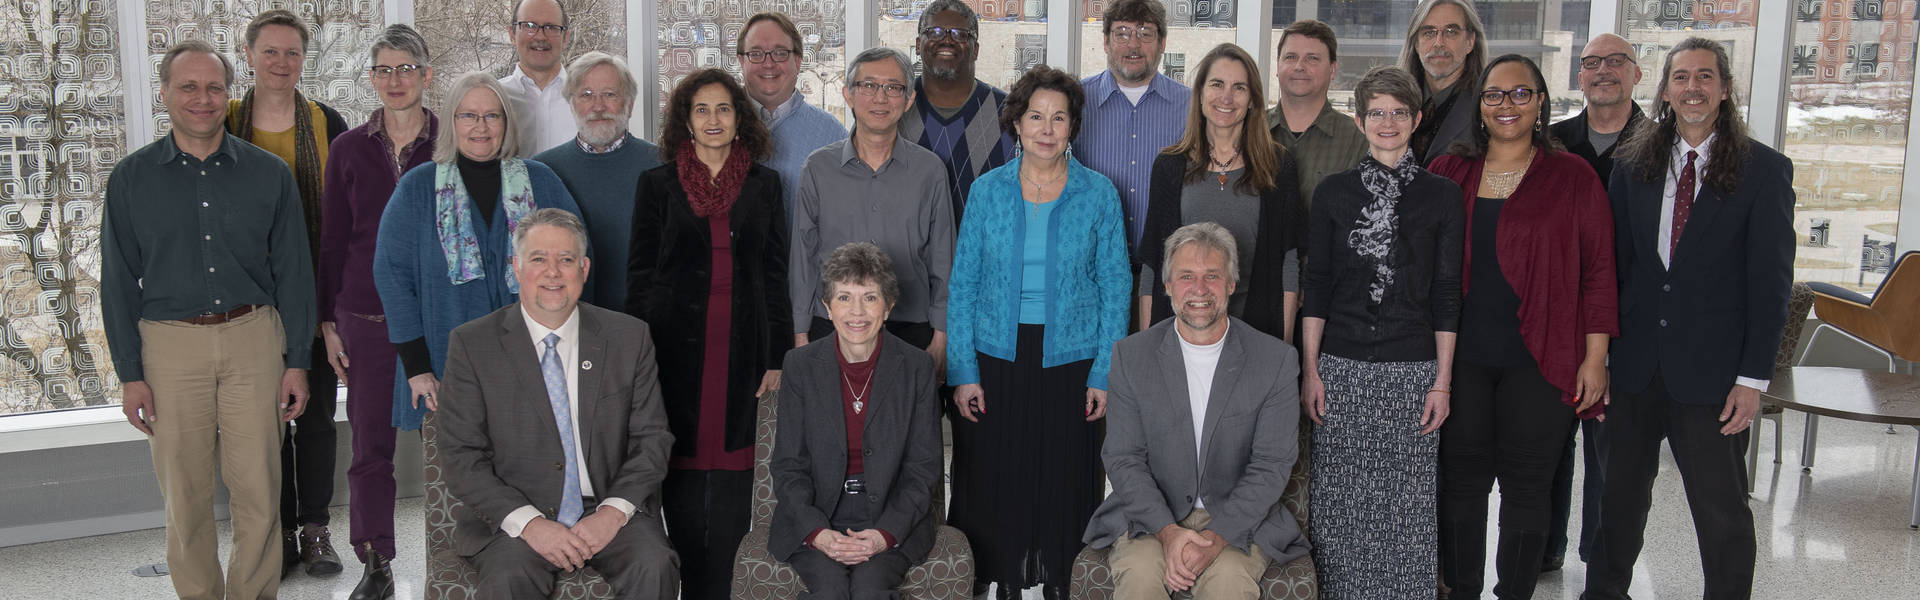 College of Arts and Sciences Chairs and Directors Group February 2017